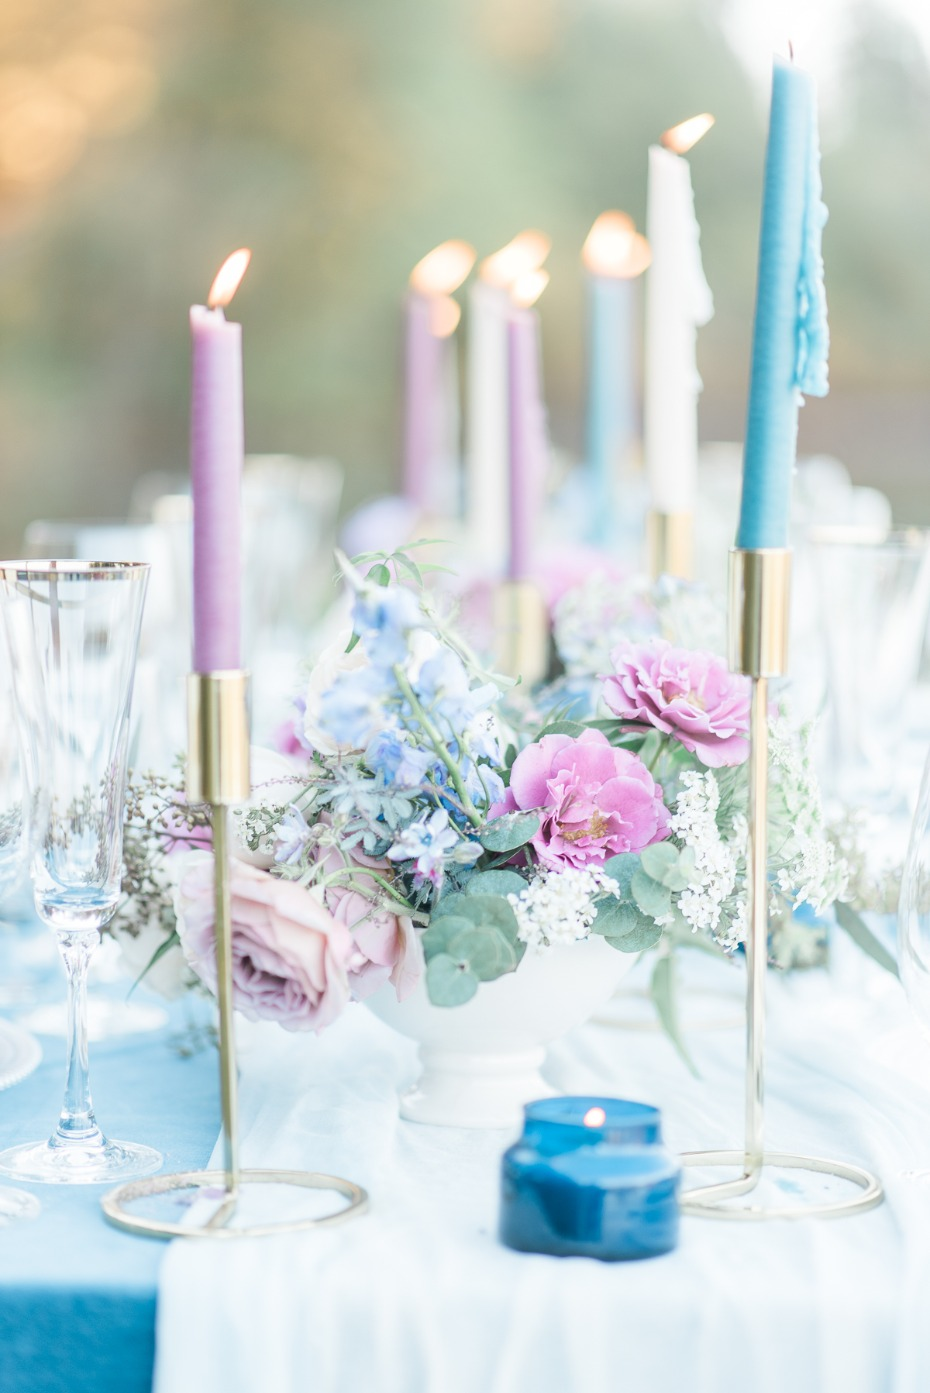 Elegant centerpiece in blue and pink